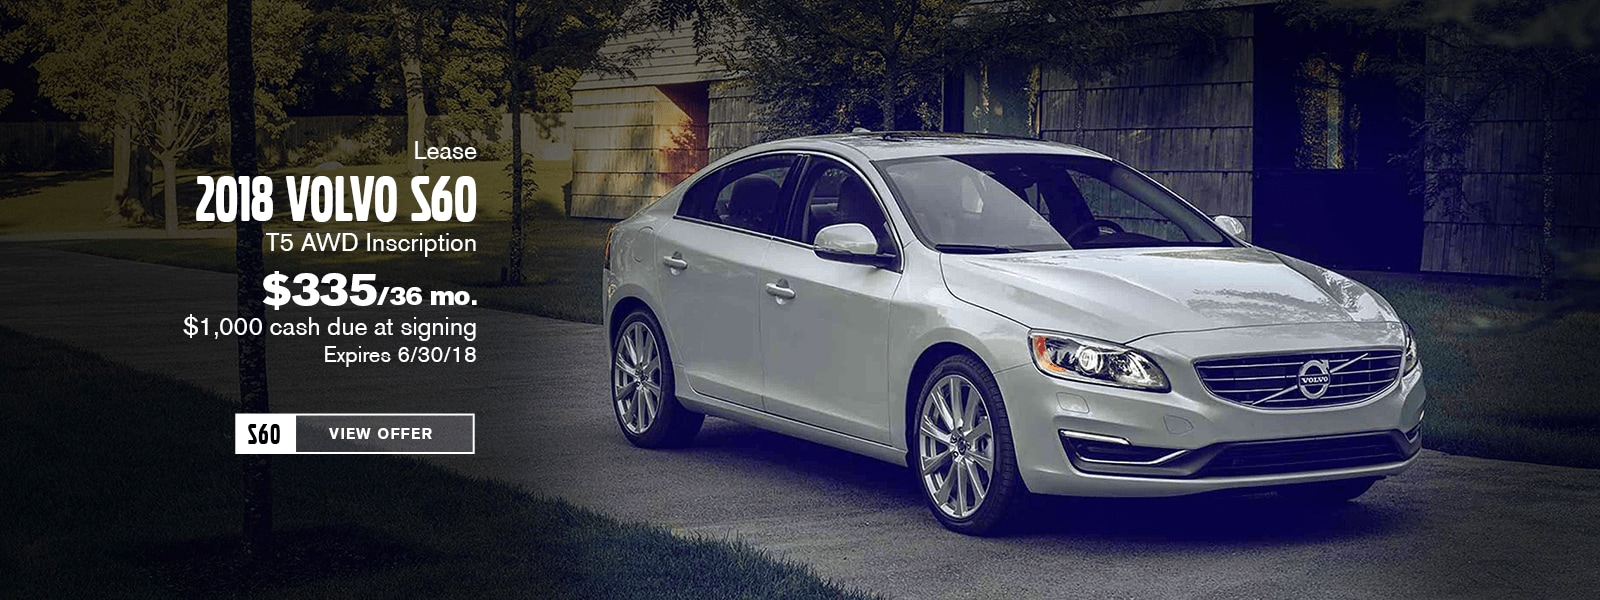 ct volvo previous dealers dealer cars hasbrouck of new next and in pause kundert heights used